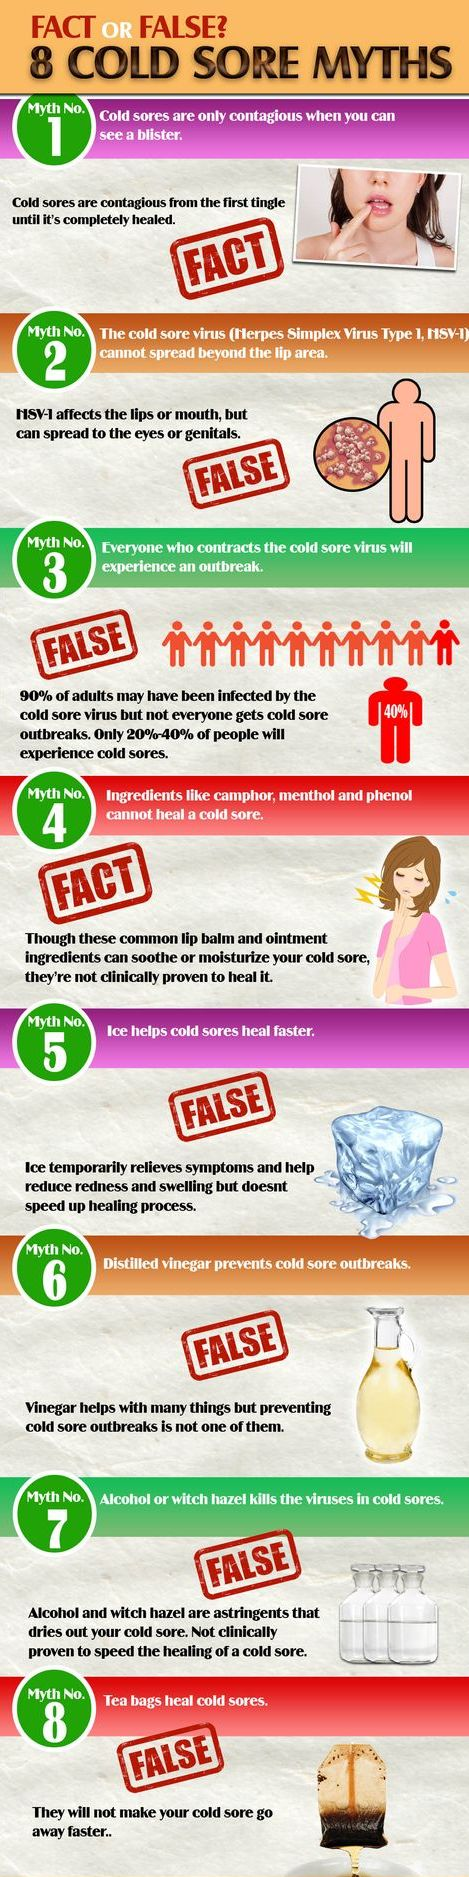 cold sore myths